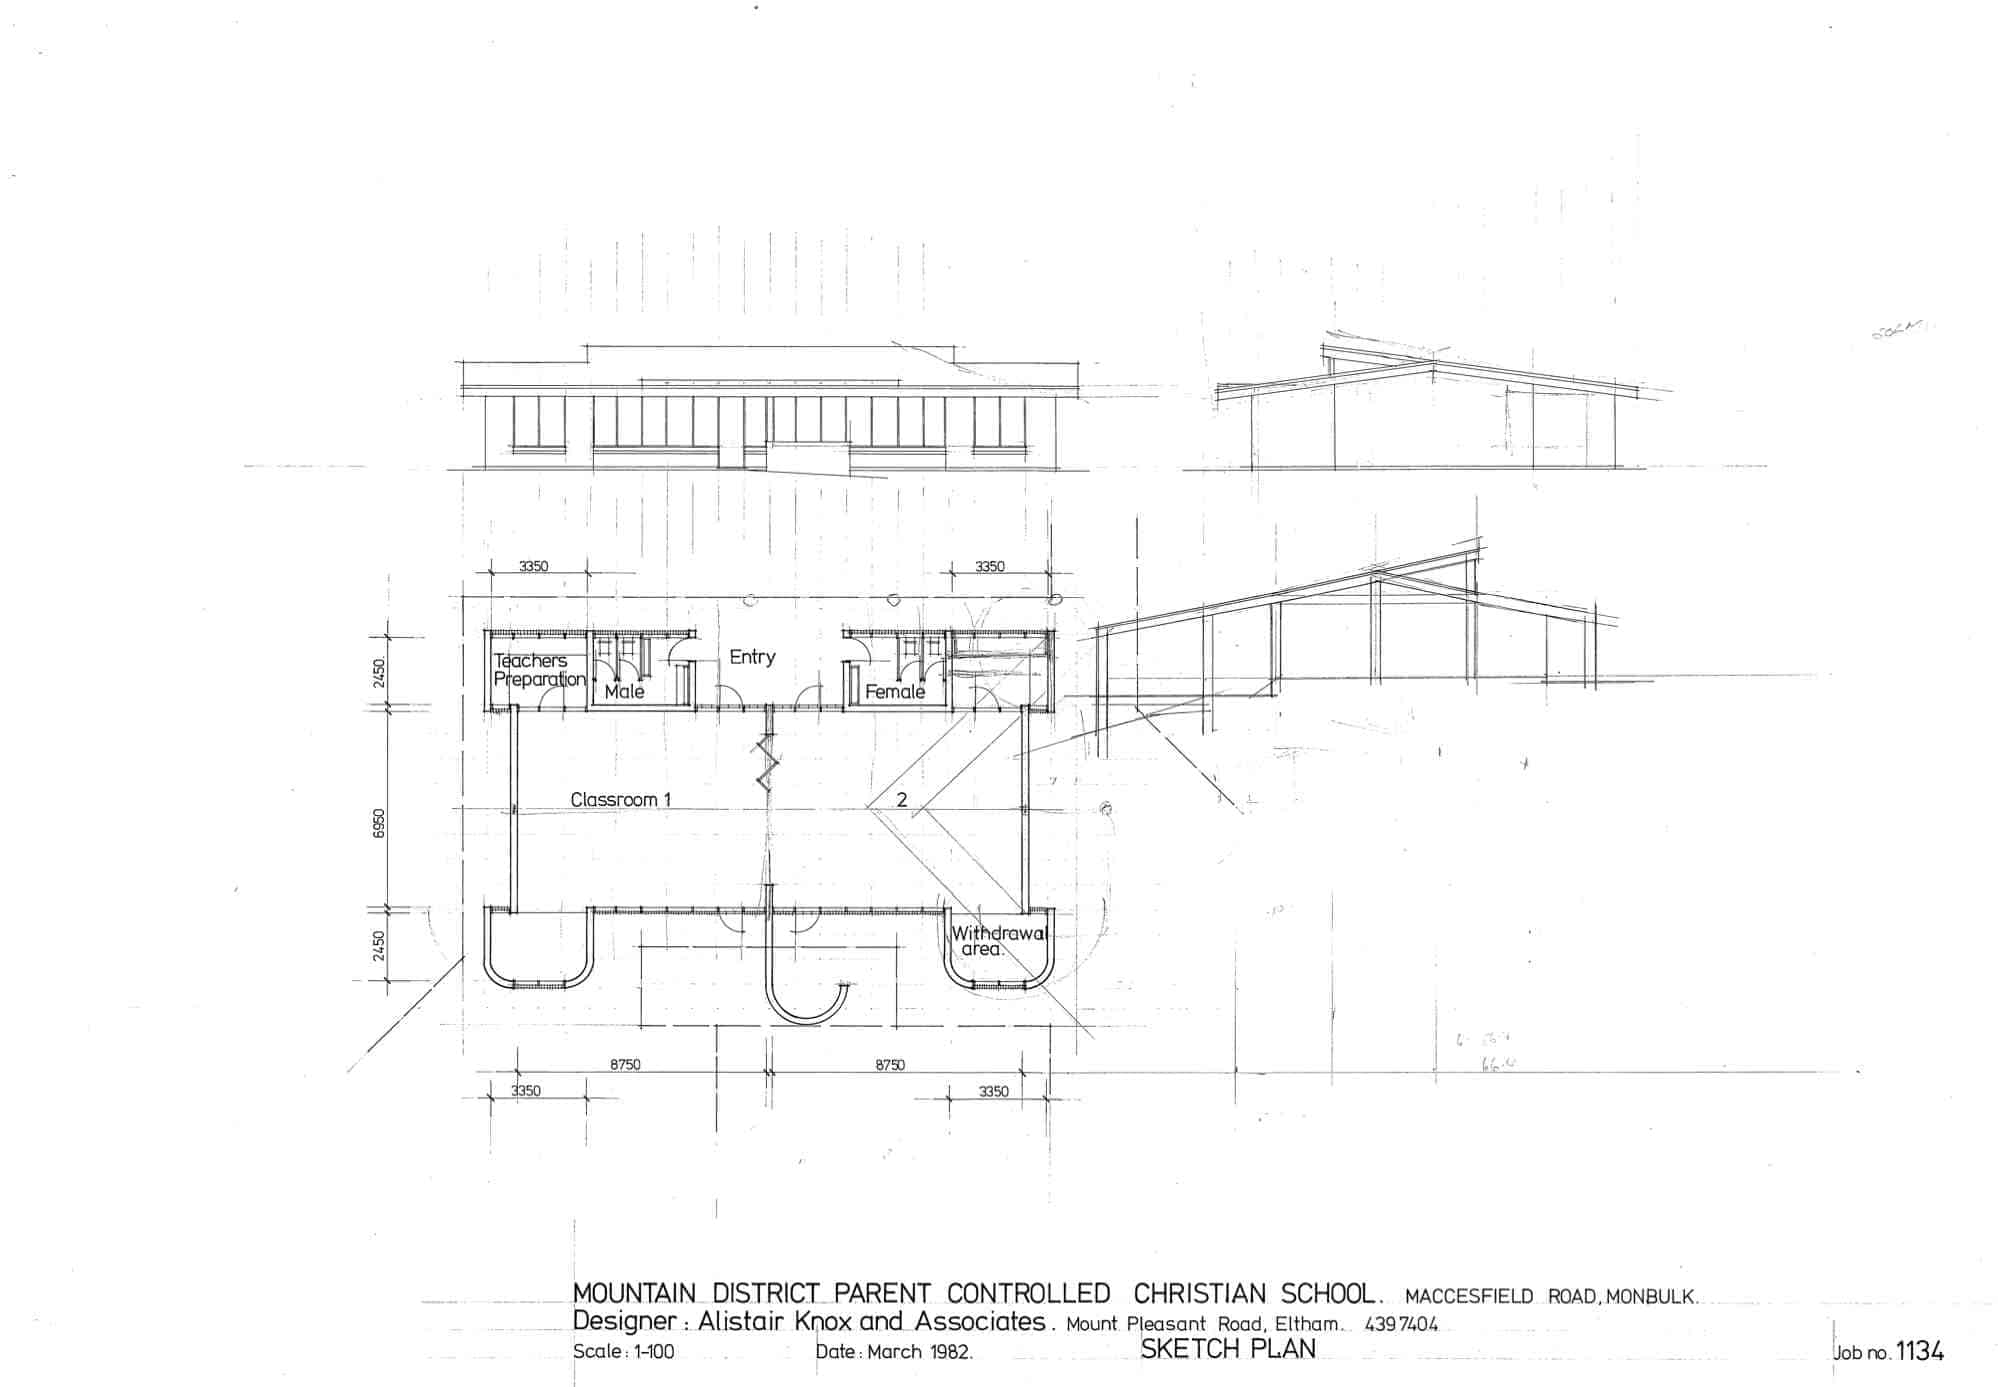 Mountain District Parent Controlled Christian School, 9: sketch plan